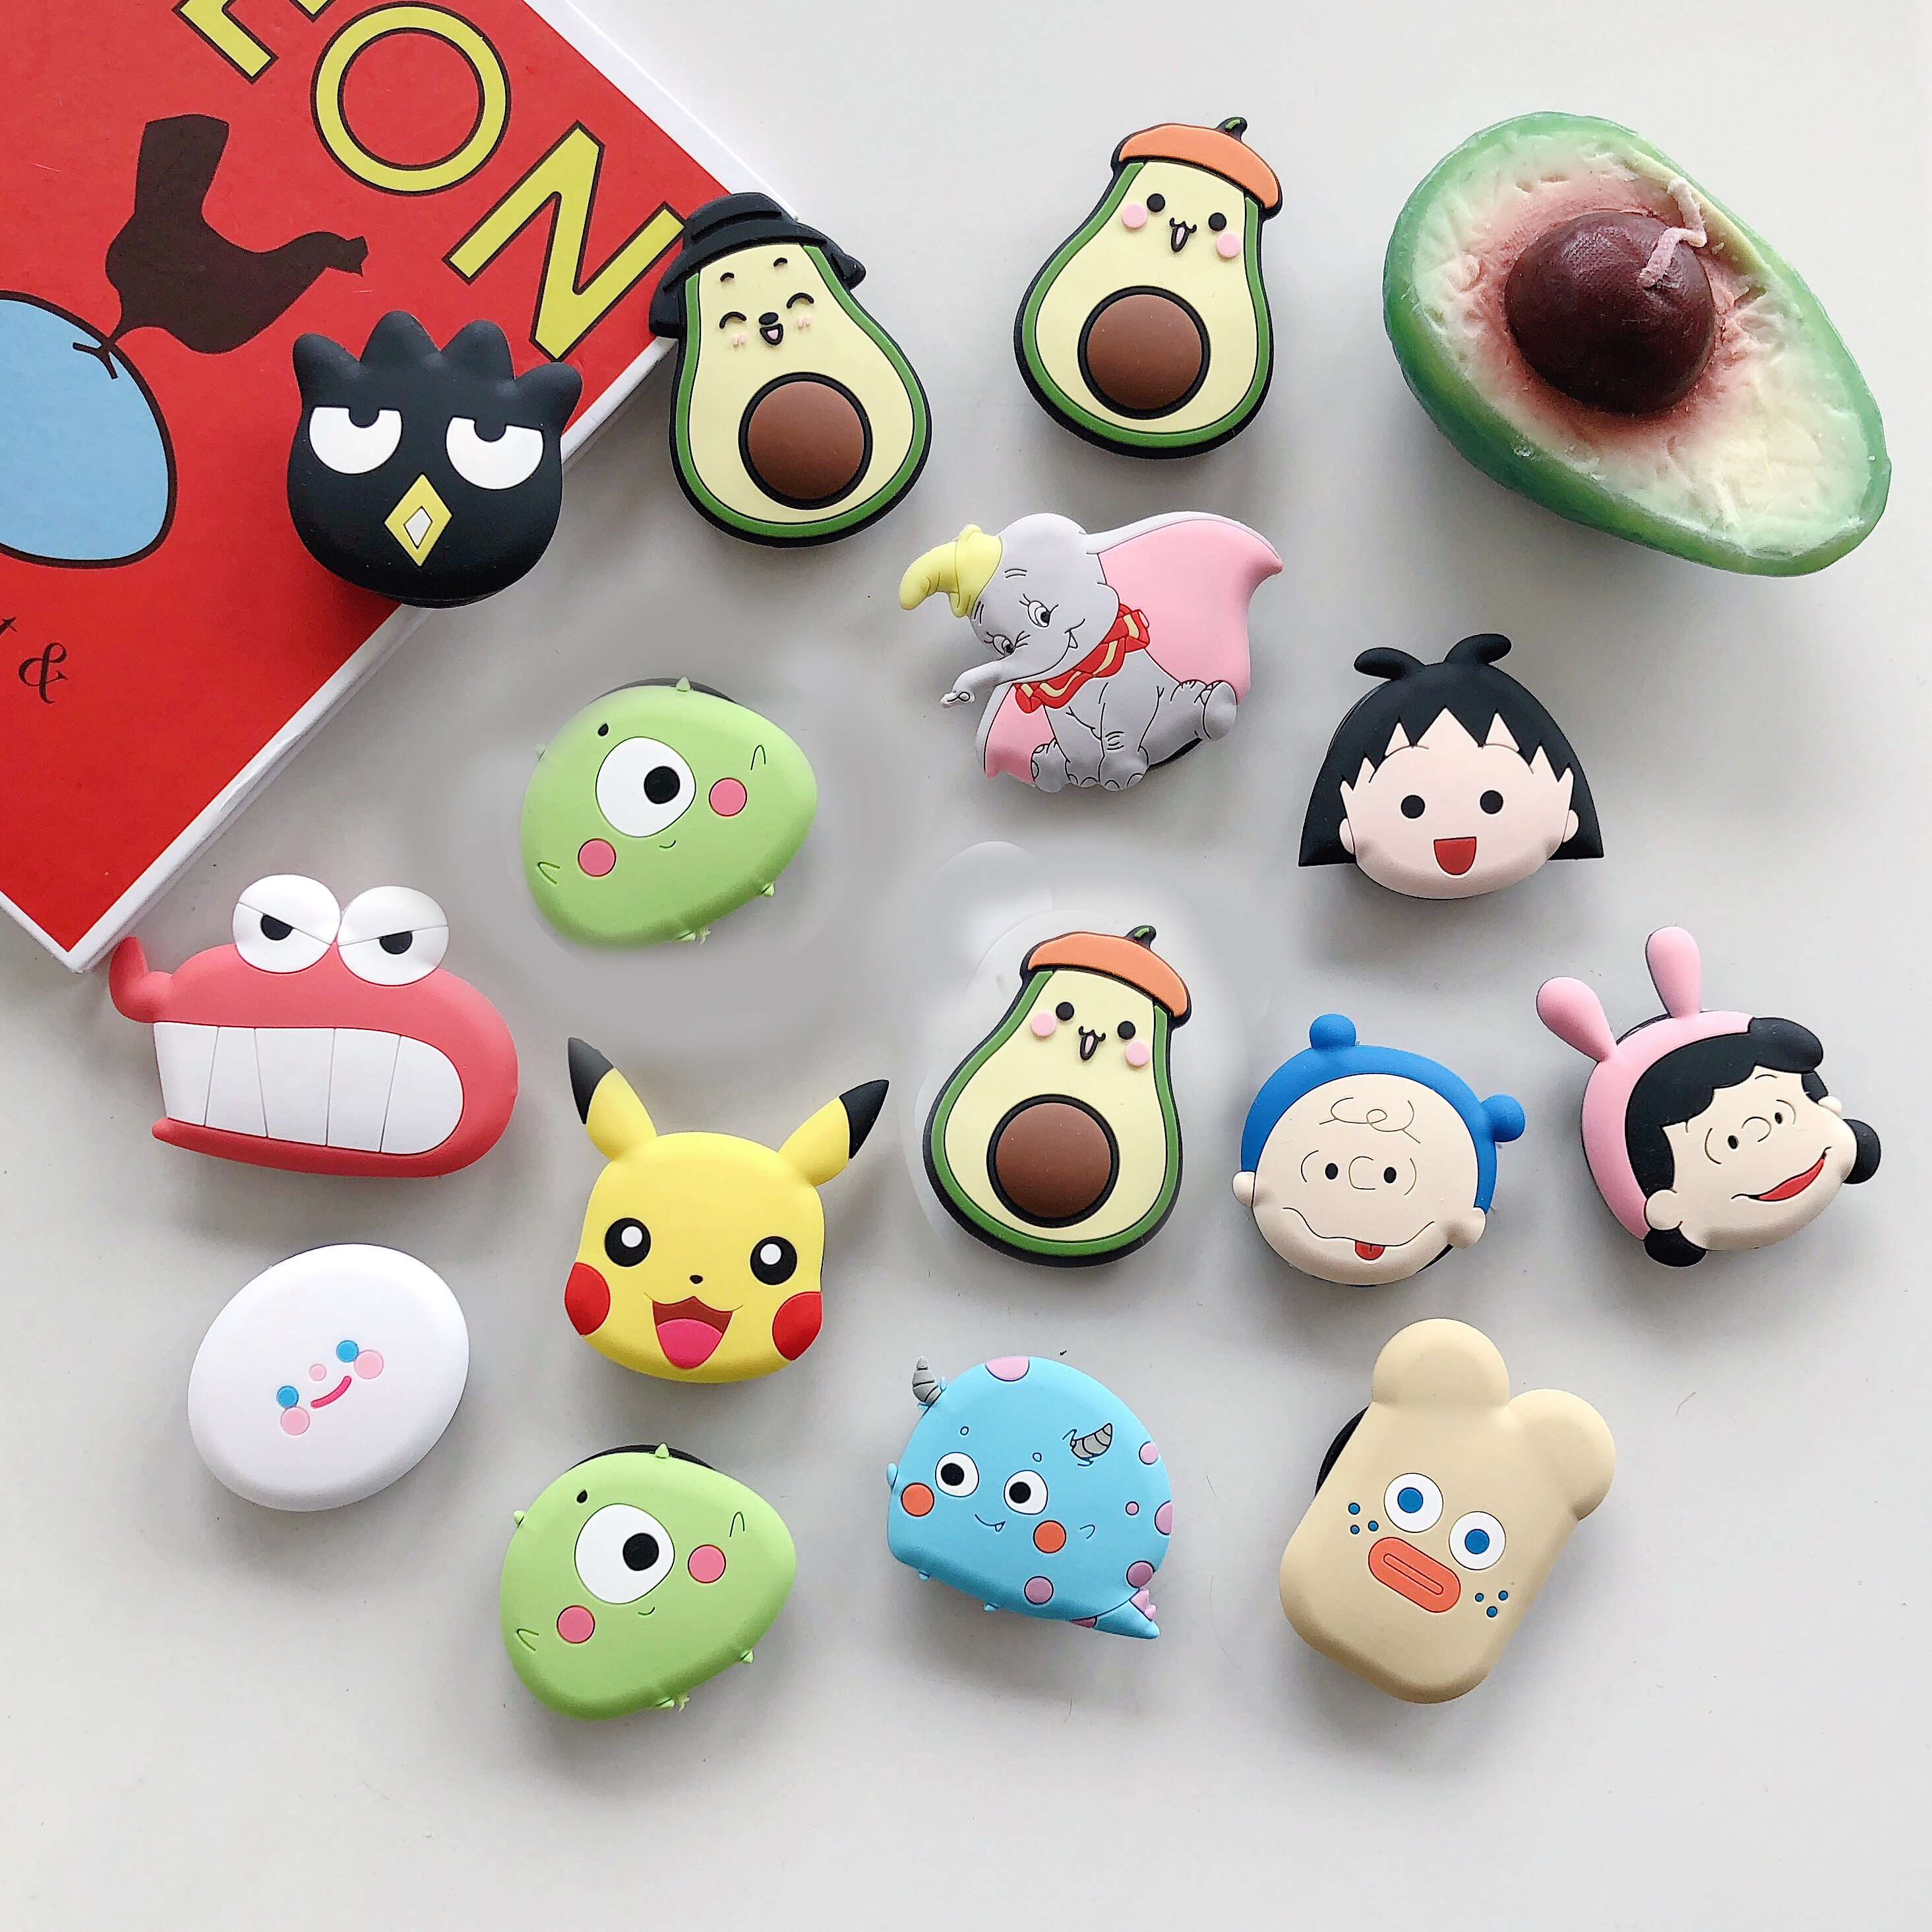 Airbag Stand Cute Cartoon Round Universal Mobile Phone Ring Holder Gasbag Fold Bracket Mount For IPhone XR Samsung Huawei Xiaomi